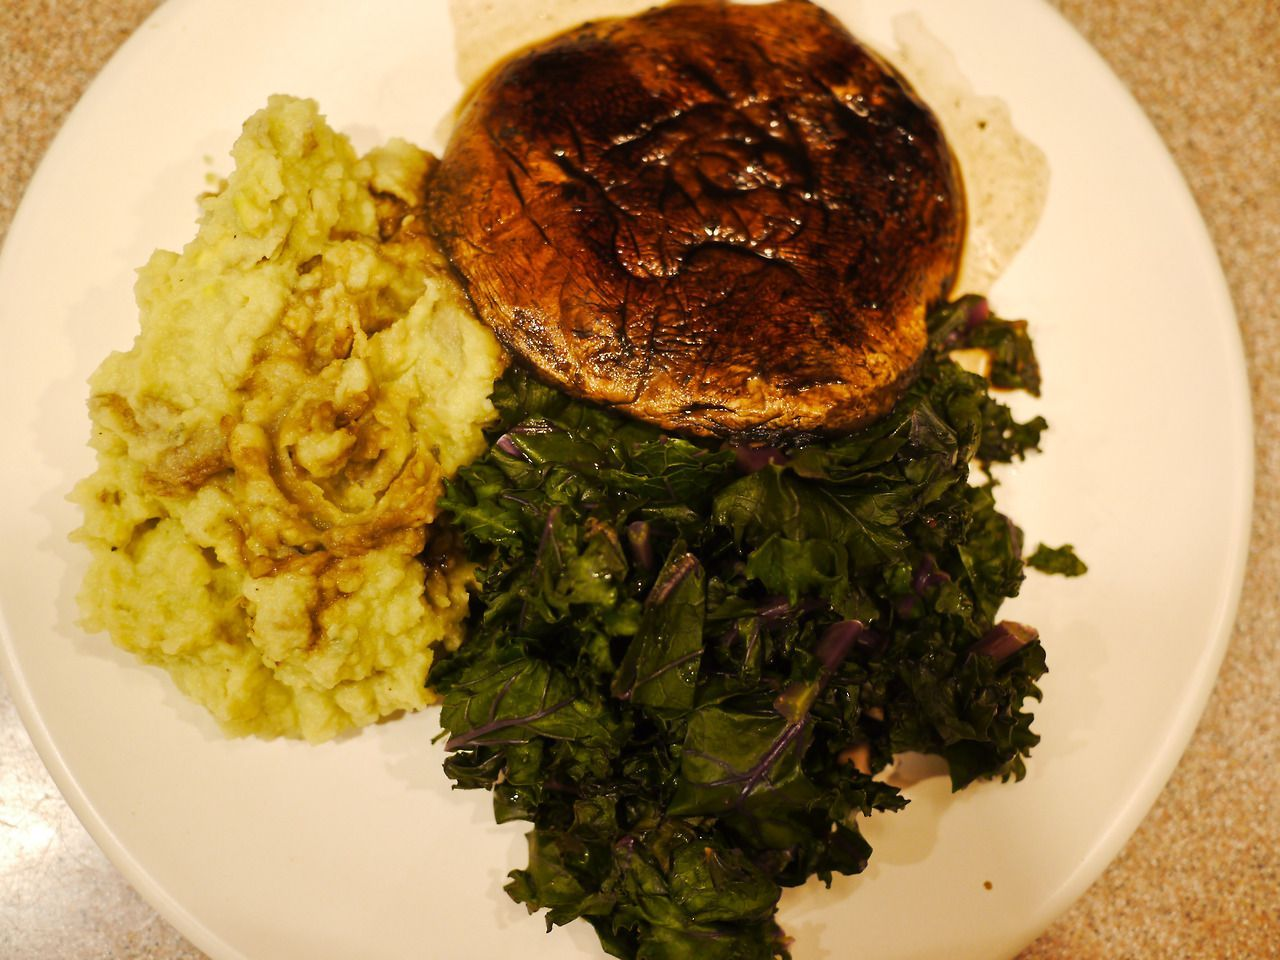 Portobello Steaks with Red Kale and Avocado Mashed Potatoes  Quarter about 1.5lbs of potatoes. Boil over high heat for about 15 - 20 minutes. Drain and put potatoes back in pot. Add 1/2 cup non dairy milk, 1 tbls non dairy butter, 1 sliced avocado, 4 cloves garlic, and salt and pepper to taste. Mash and smooth together until your mouth waters.   Make a marinade for the portobello steaks with 1 tbls veggie broth, 1 tsp rice vinegar, 2 tsp soy sauce, 1/8 tsp red pepper flake, and a dash of chili garlic sauce or cayenne. Brush mushrooms on bottom with marinade. Place over a hot hot skillet and then coat the top of the shroom with the marinade. Let them grill for about 4 minutes on each side, adding marinade as needed.   Chop a bunch of red kale and add it to a skillet with 2 tbls veggie broth, 1 tbls mustard, and 2 tsp white wine vinegar. Incorporate, cover, and let simmer for about 4 minutes, probably a little less. Just enough to wilt and soak up flavor.   Plate it and drool!